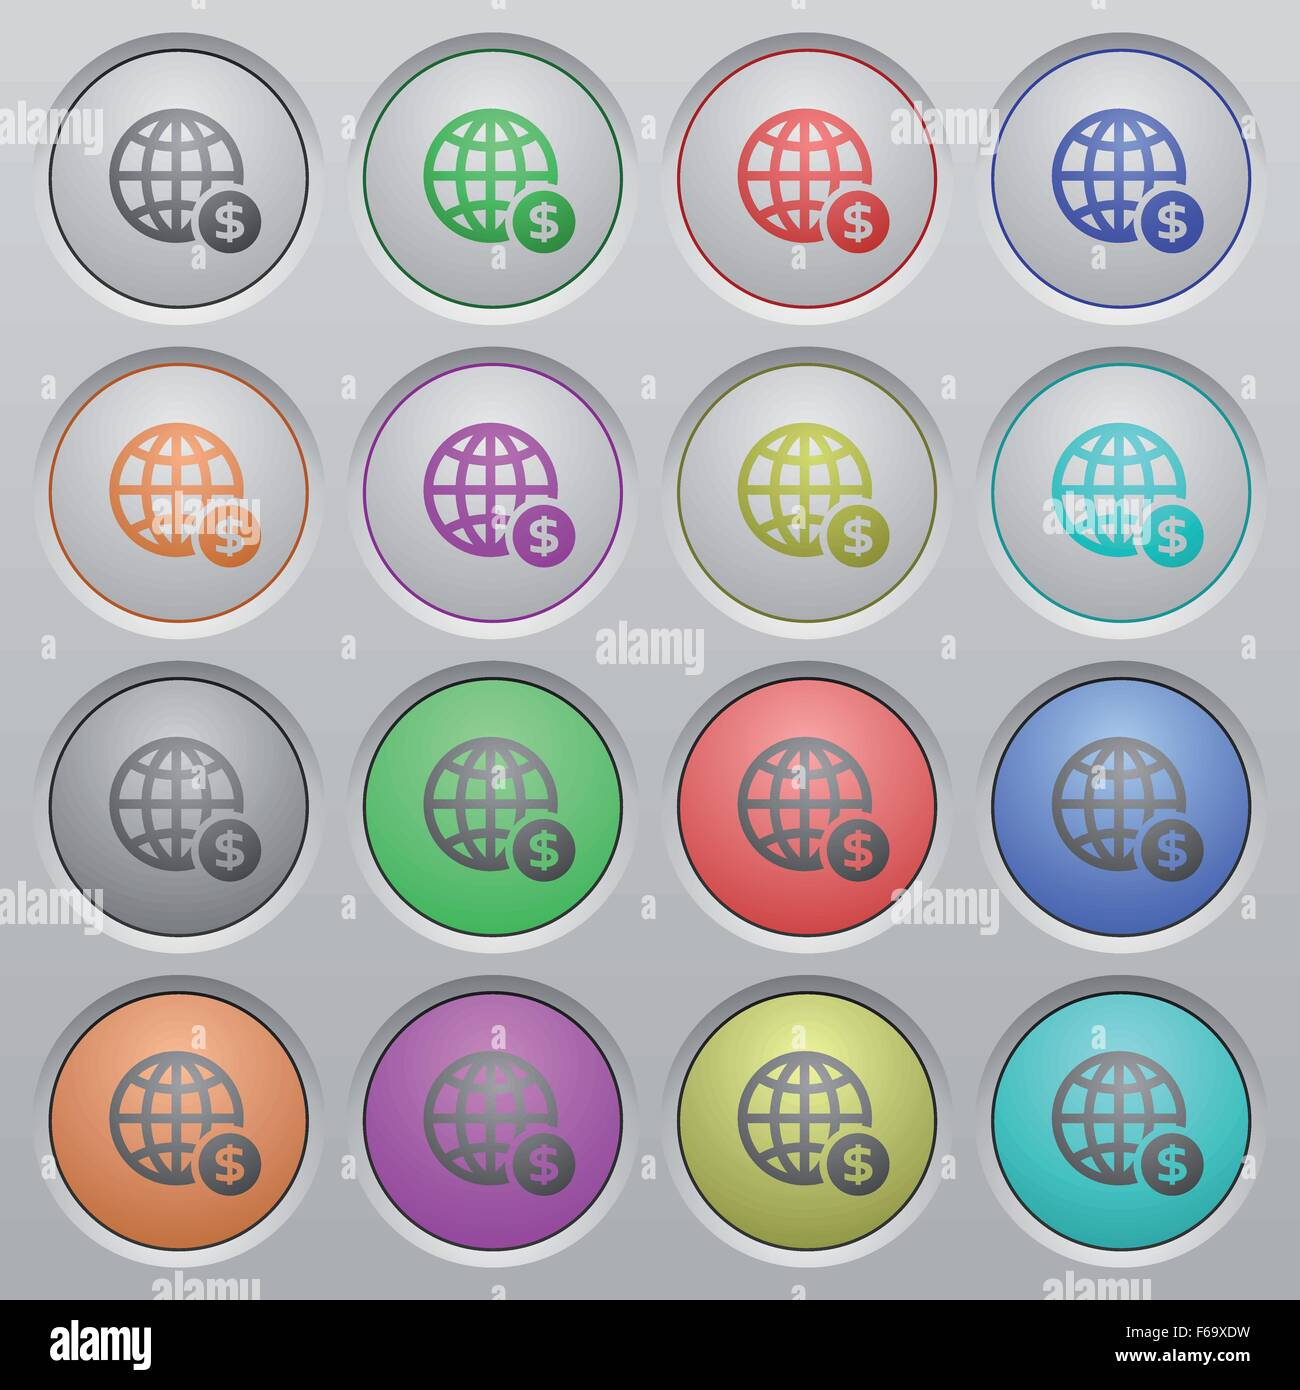 Set of online payment plastic sunk spherical buttons on light gray background. 16 variations included. Well-organized - Stock Image